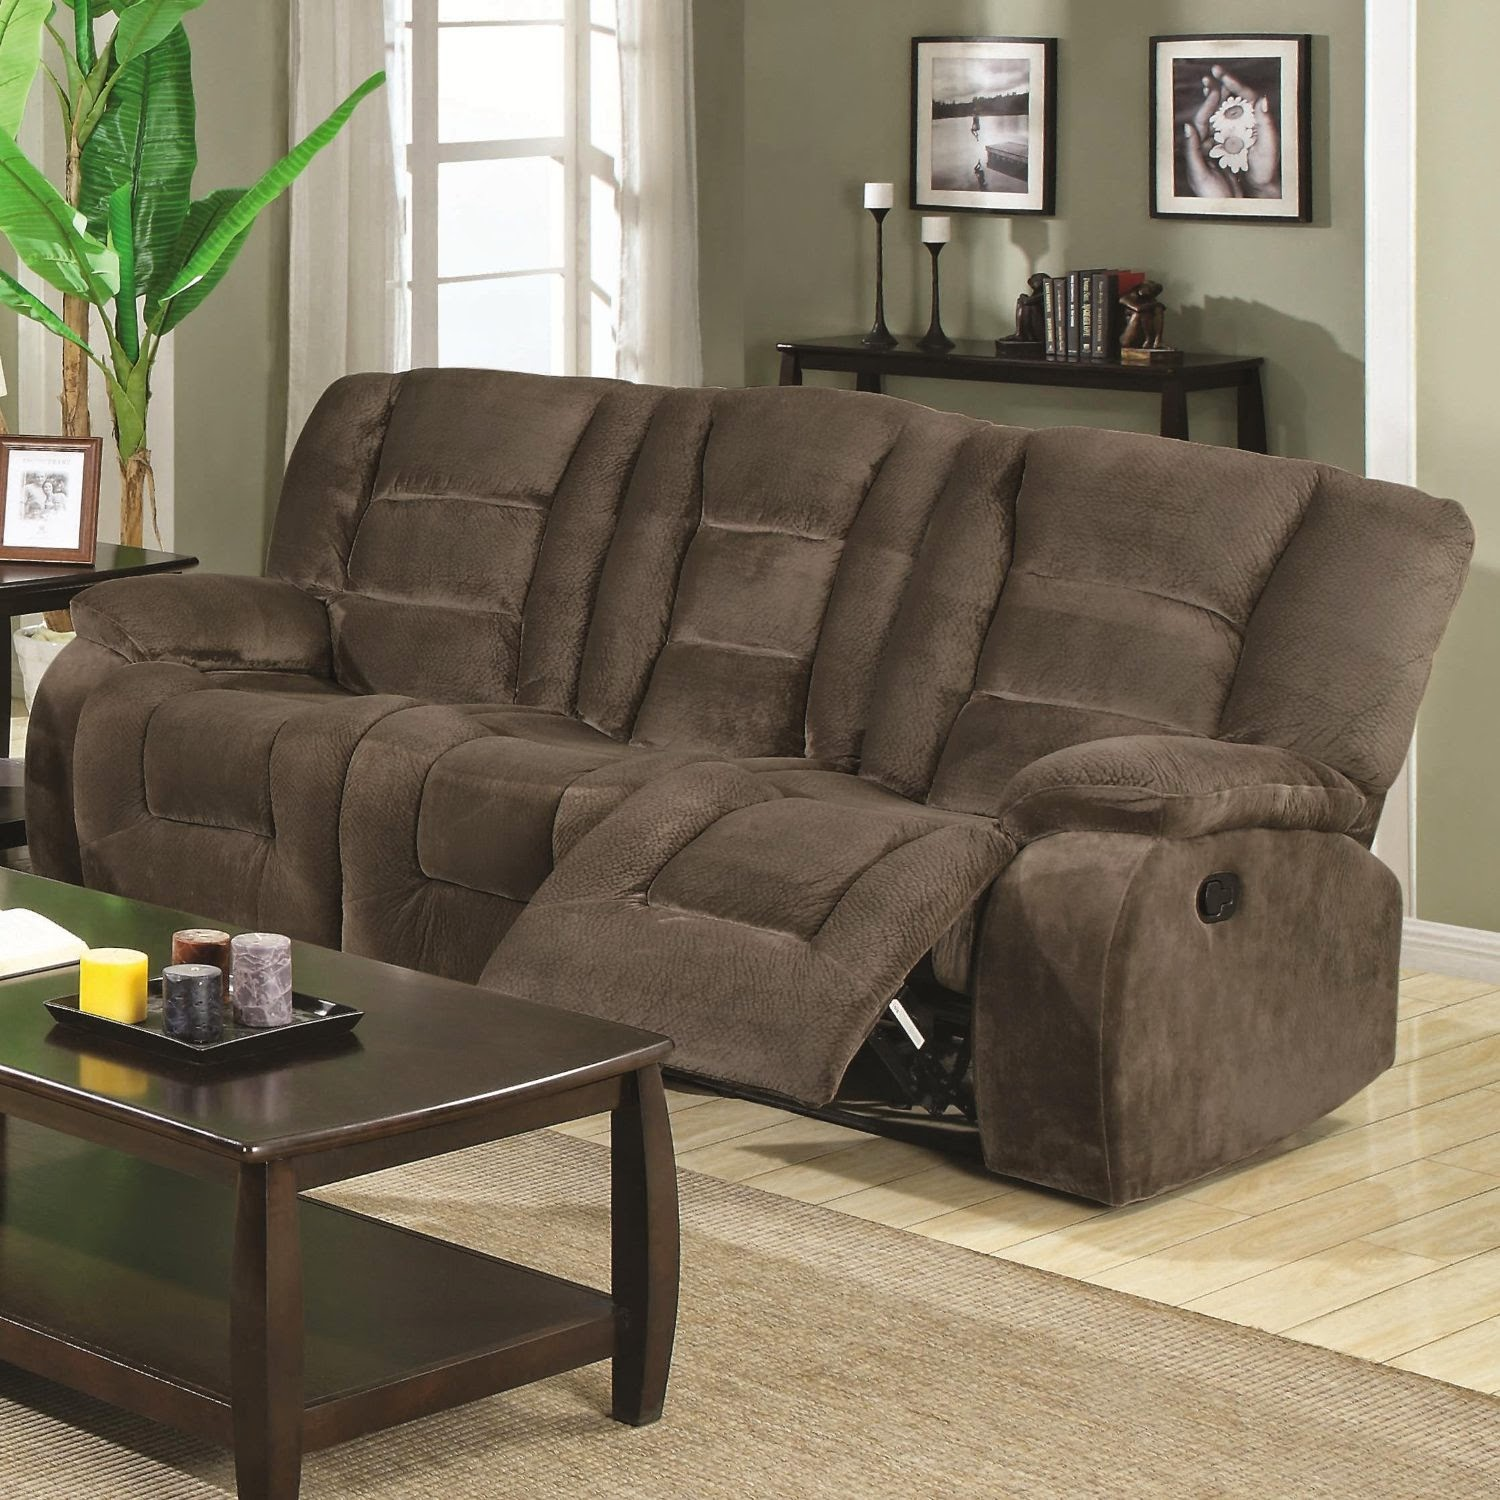 Coaster Home Brown SiegeFabric Recliner Sofas & Cheap Reclining Sofas Sale: Fabric Recliner Sofas Sale islam-shia.org